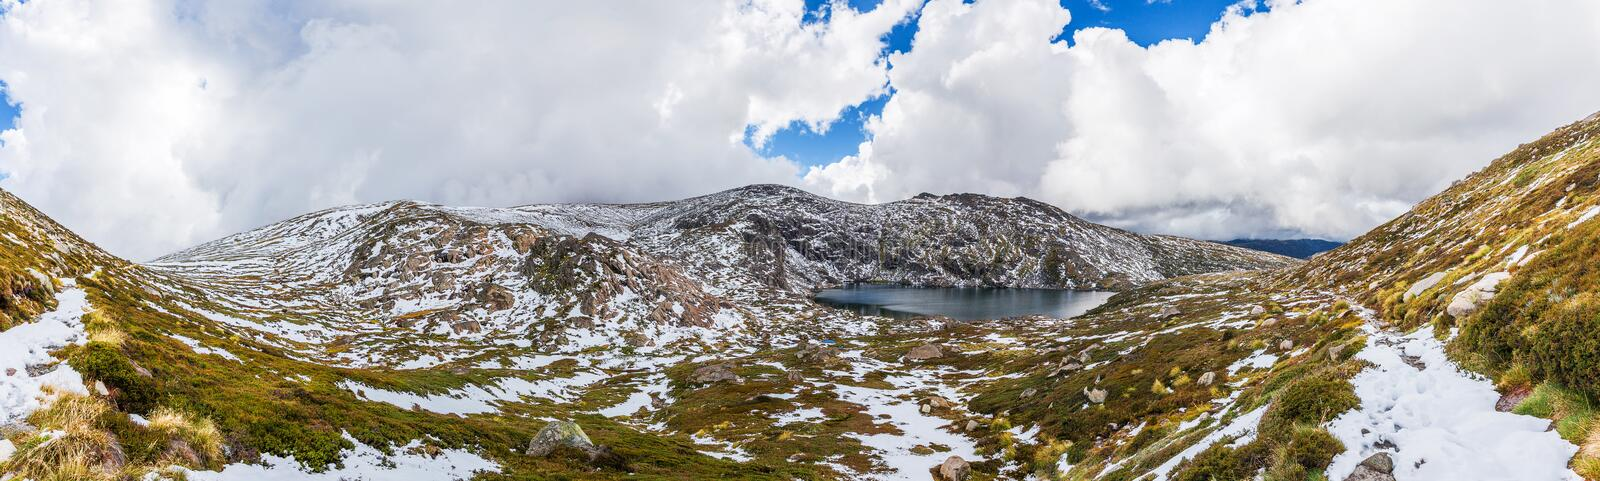 Beautiful Panorama of Blue Lake and snow covered mountains. Kosciuszko National Park, Australia royalty free stock images